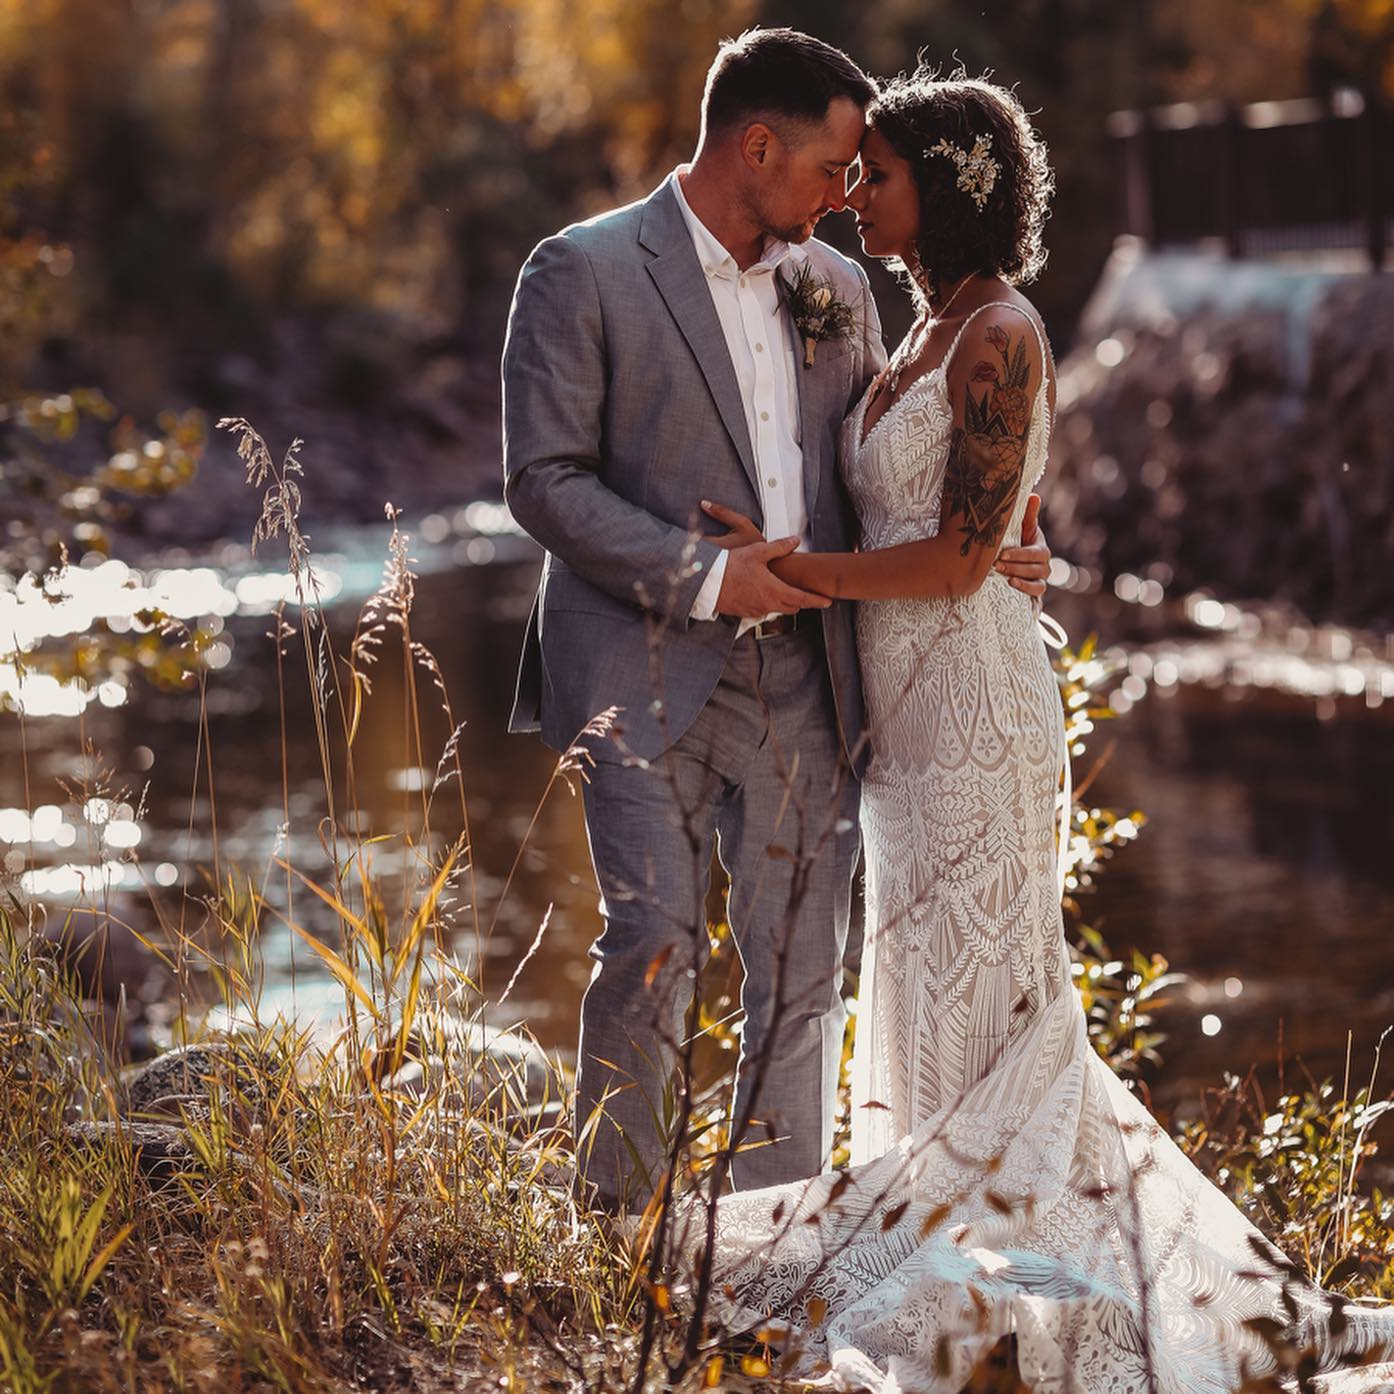 events & attractions WEDDINGS & EVENTS native roaming pic